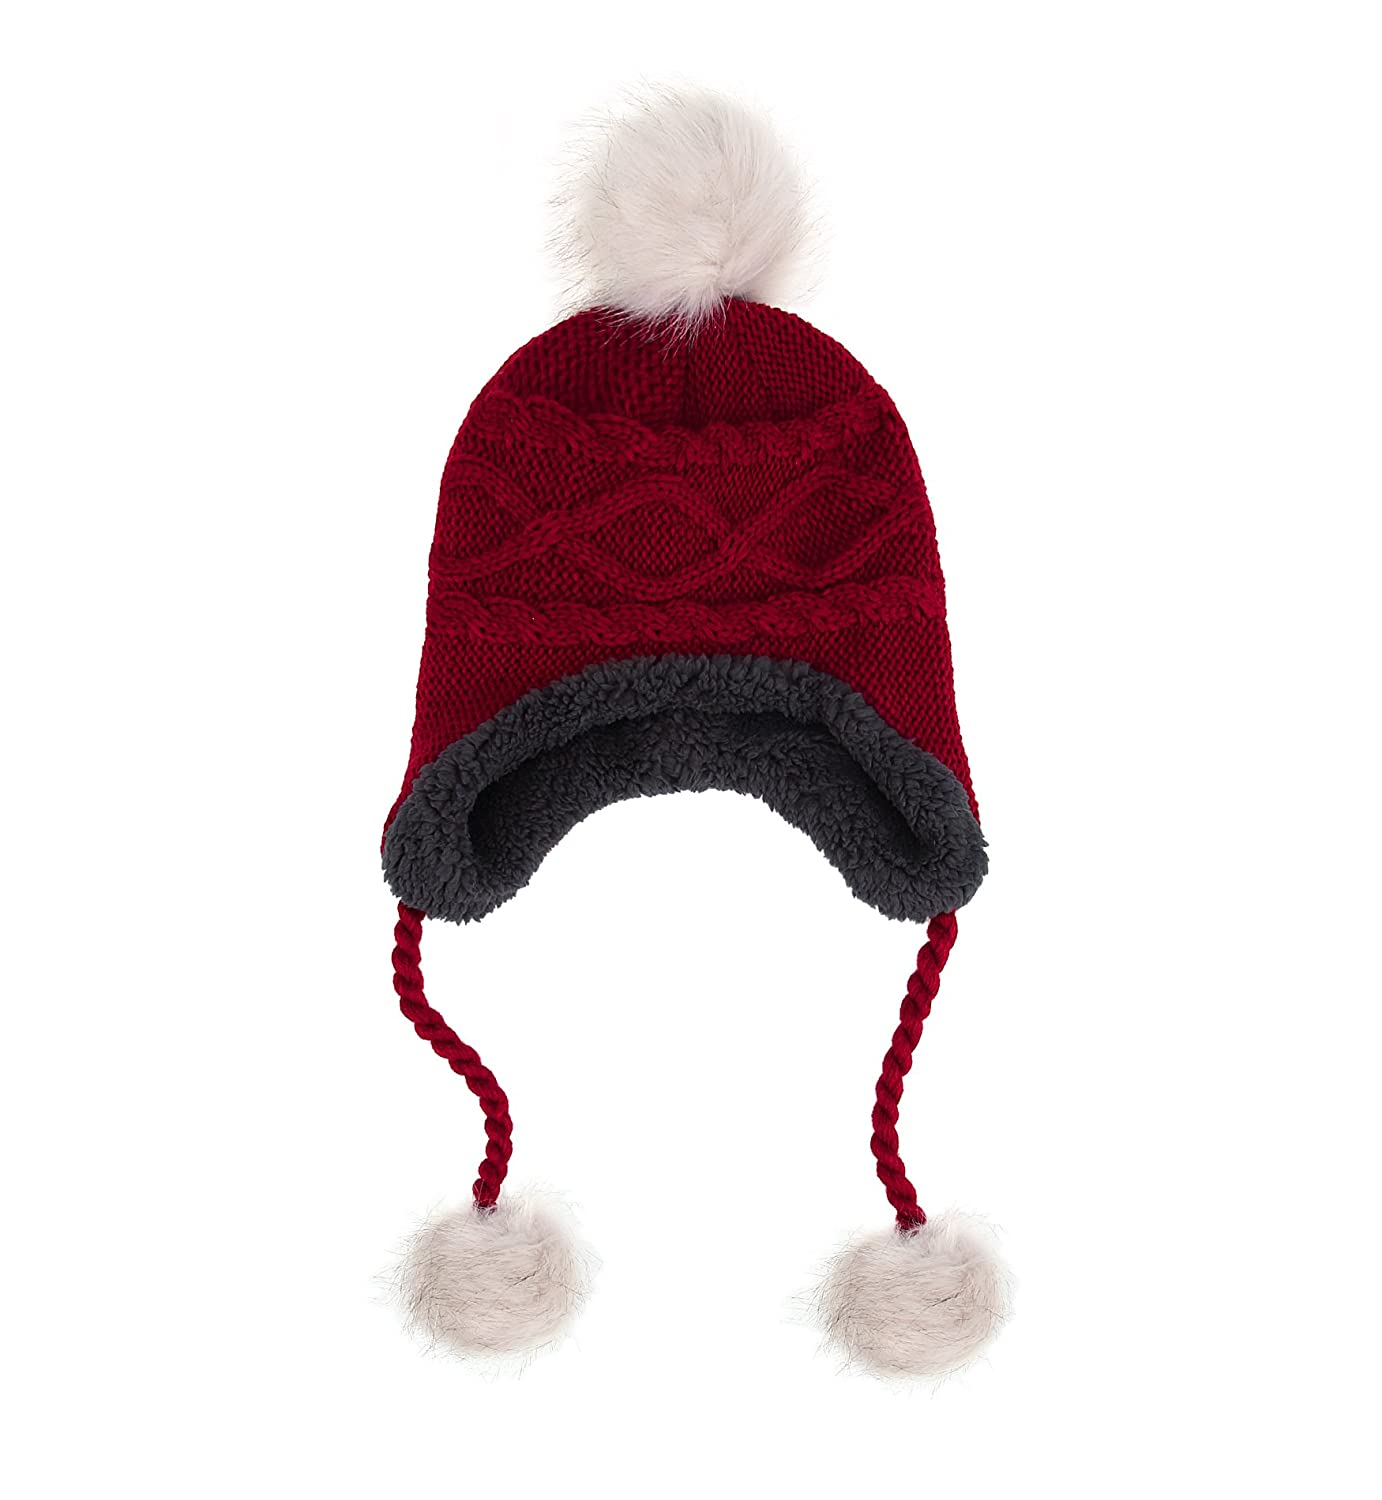 Sumolux Soft Warm Earflap Hood Beanie Hat for Girls Women Knitted Pom Pom Winter Hats